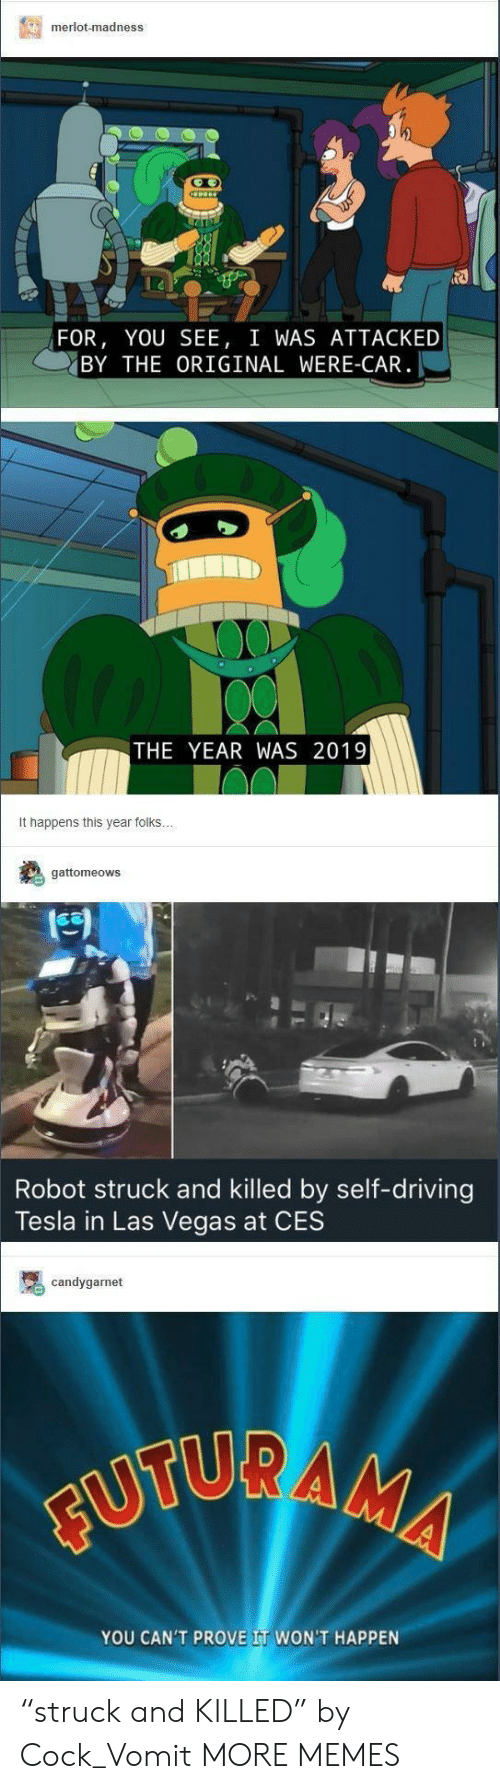 """Dank, Driving, and Memes: merlot-madness  FOR, YOU SEE, I WAS ATTACKED  BY THE ORIGINAL WERE-CAR  THE YEAR WAS 2019  It happens this year folks  gattomeows  Robot struck and killed by self-driving  Tesla in Las Vegas at CES  candygarnet  YOU CAN'T PROVE IT WON'T HAPPEN """"struck and KILLED"""" by Cock_Vomit MORE MEMES"""